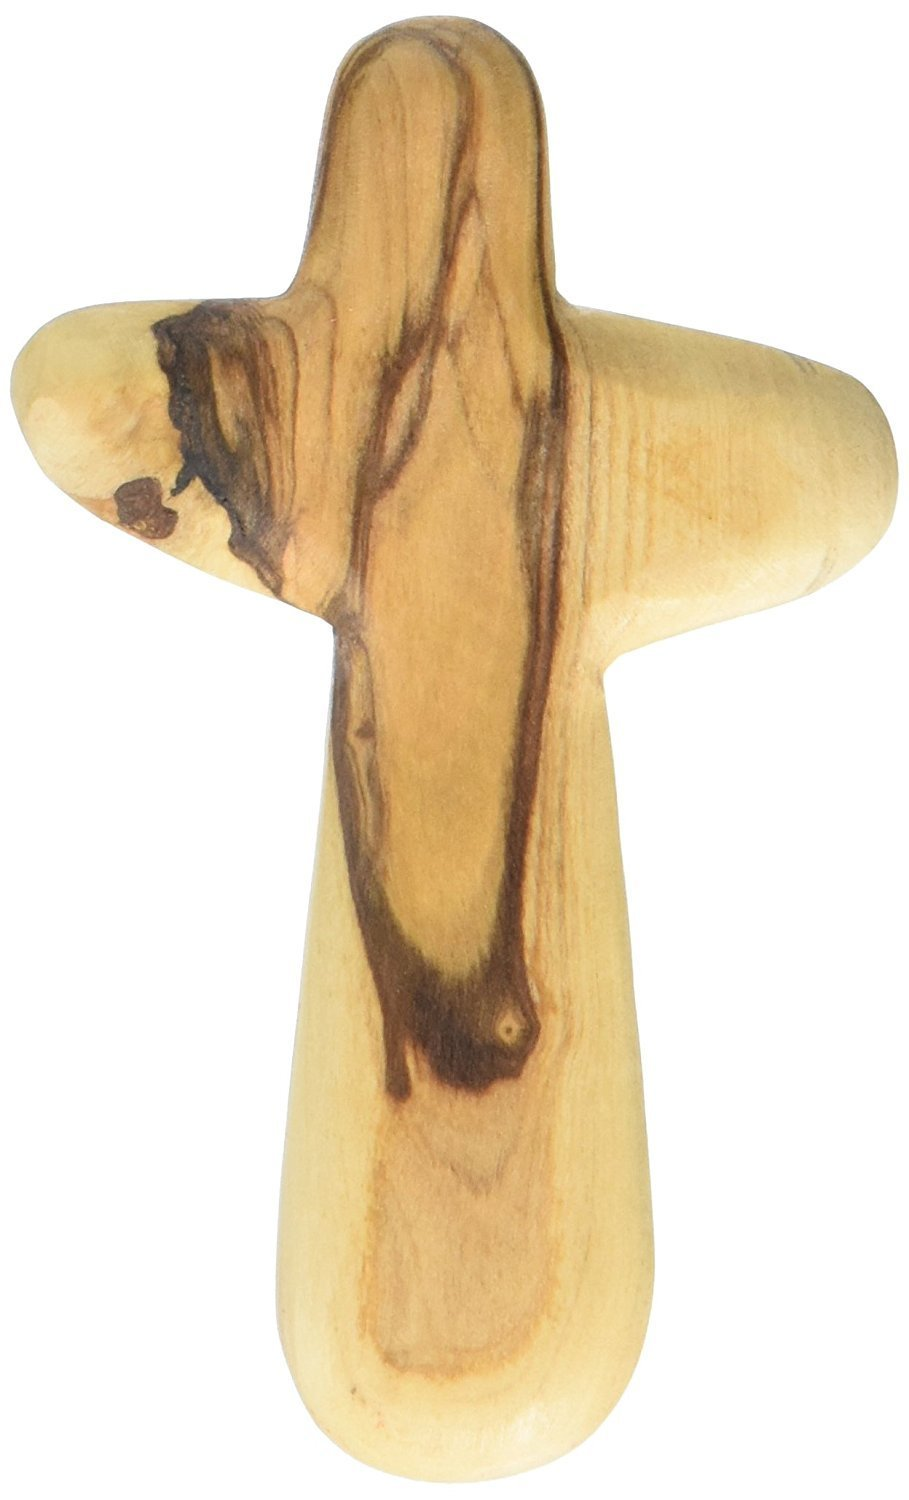 Holding Cross will fit in your Palm known as Olive wood Comfort Holding Cross with Velvet gift bag - Authentically from Bethlehem (4 inches)